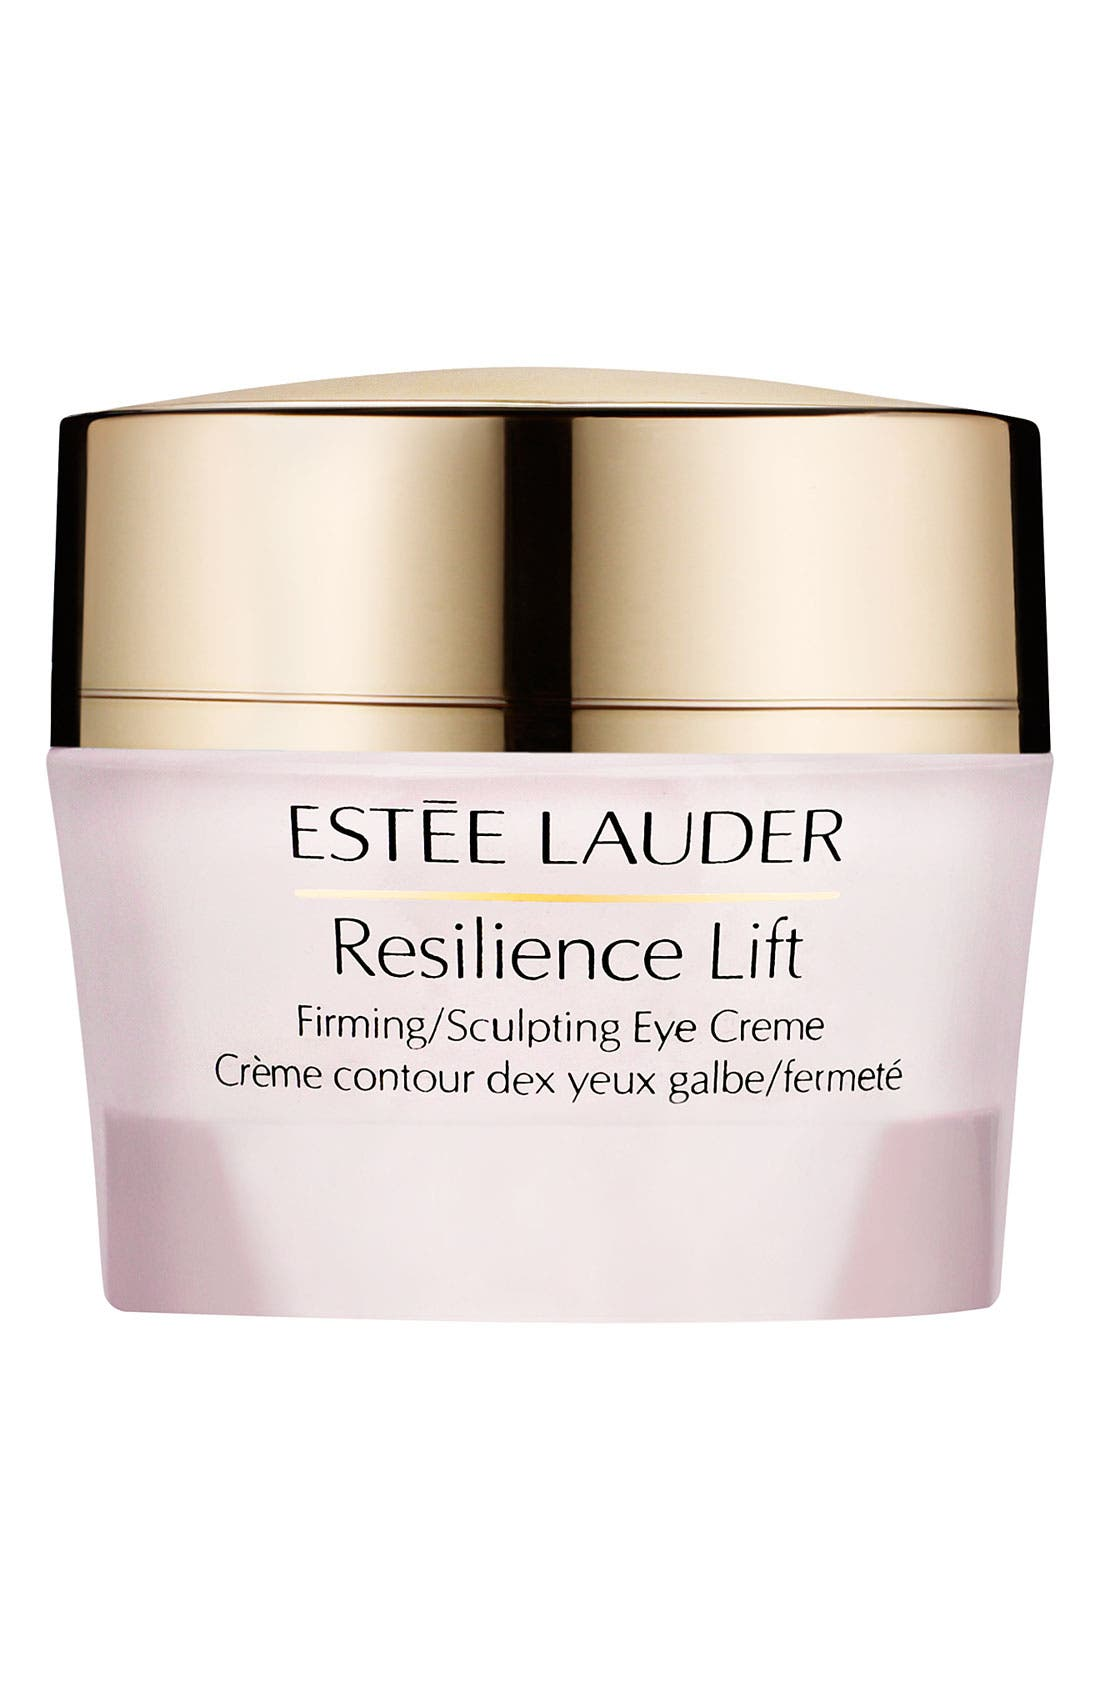 Resilience Lift Firming/Sculpting Eye Creme,                         Main,                         color, 000